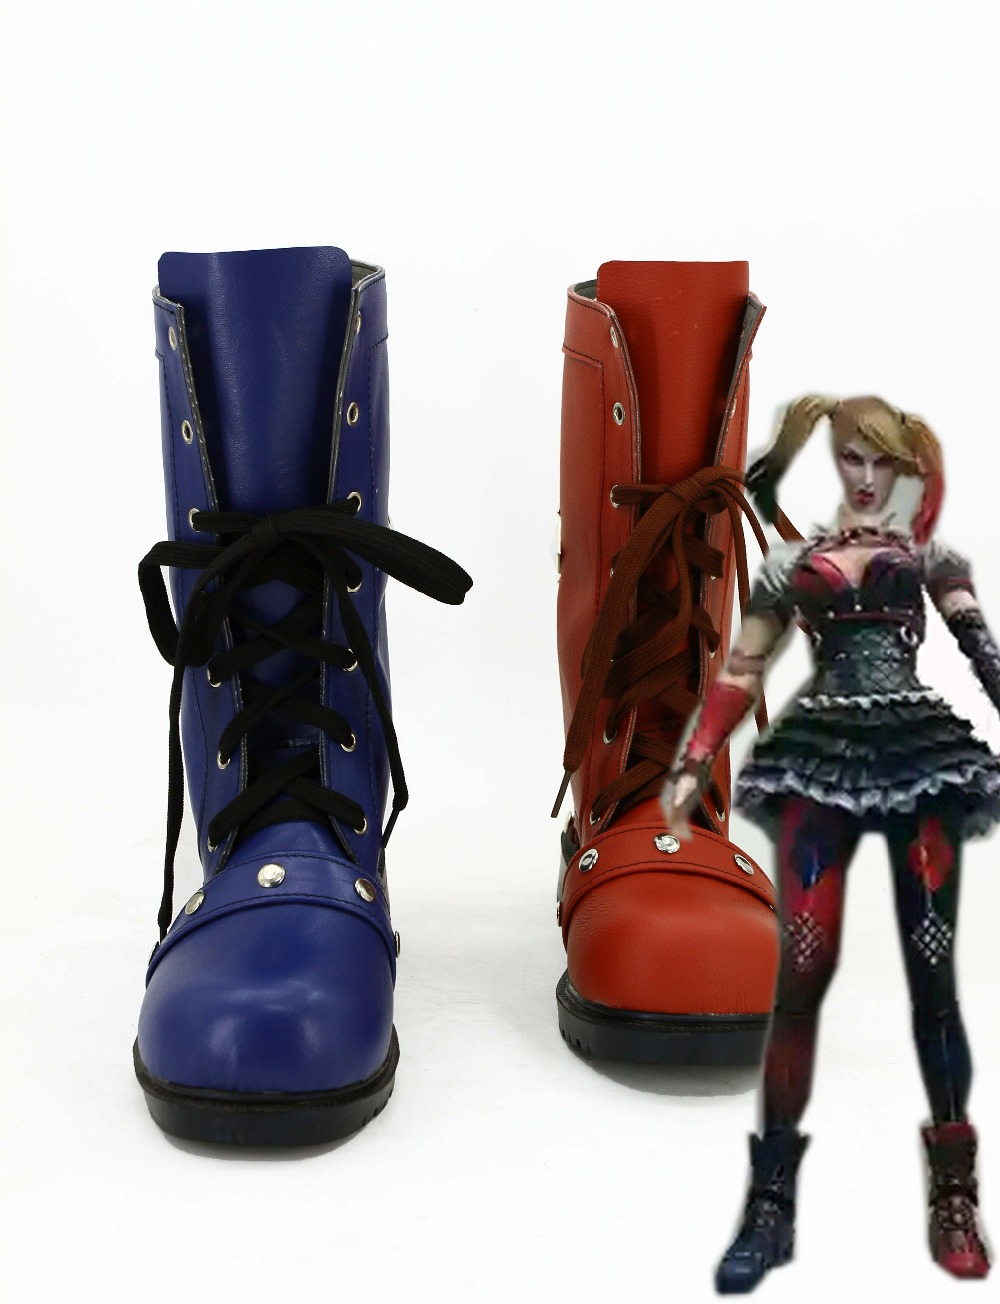 0474fe37a16f57 Batman Arkham Knight Harley Quinn Movie Halloween Cosplay Costumes Shoes  Boots Custom Made For Adult Women Euro Size-in Shoes from Novelty   Special  Use on ...